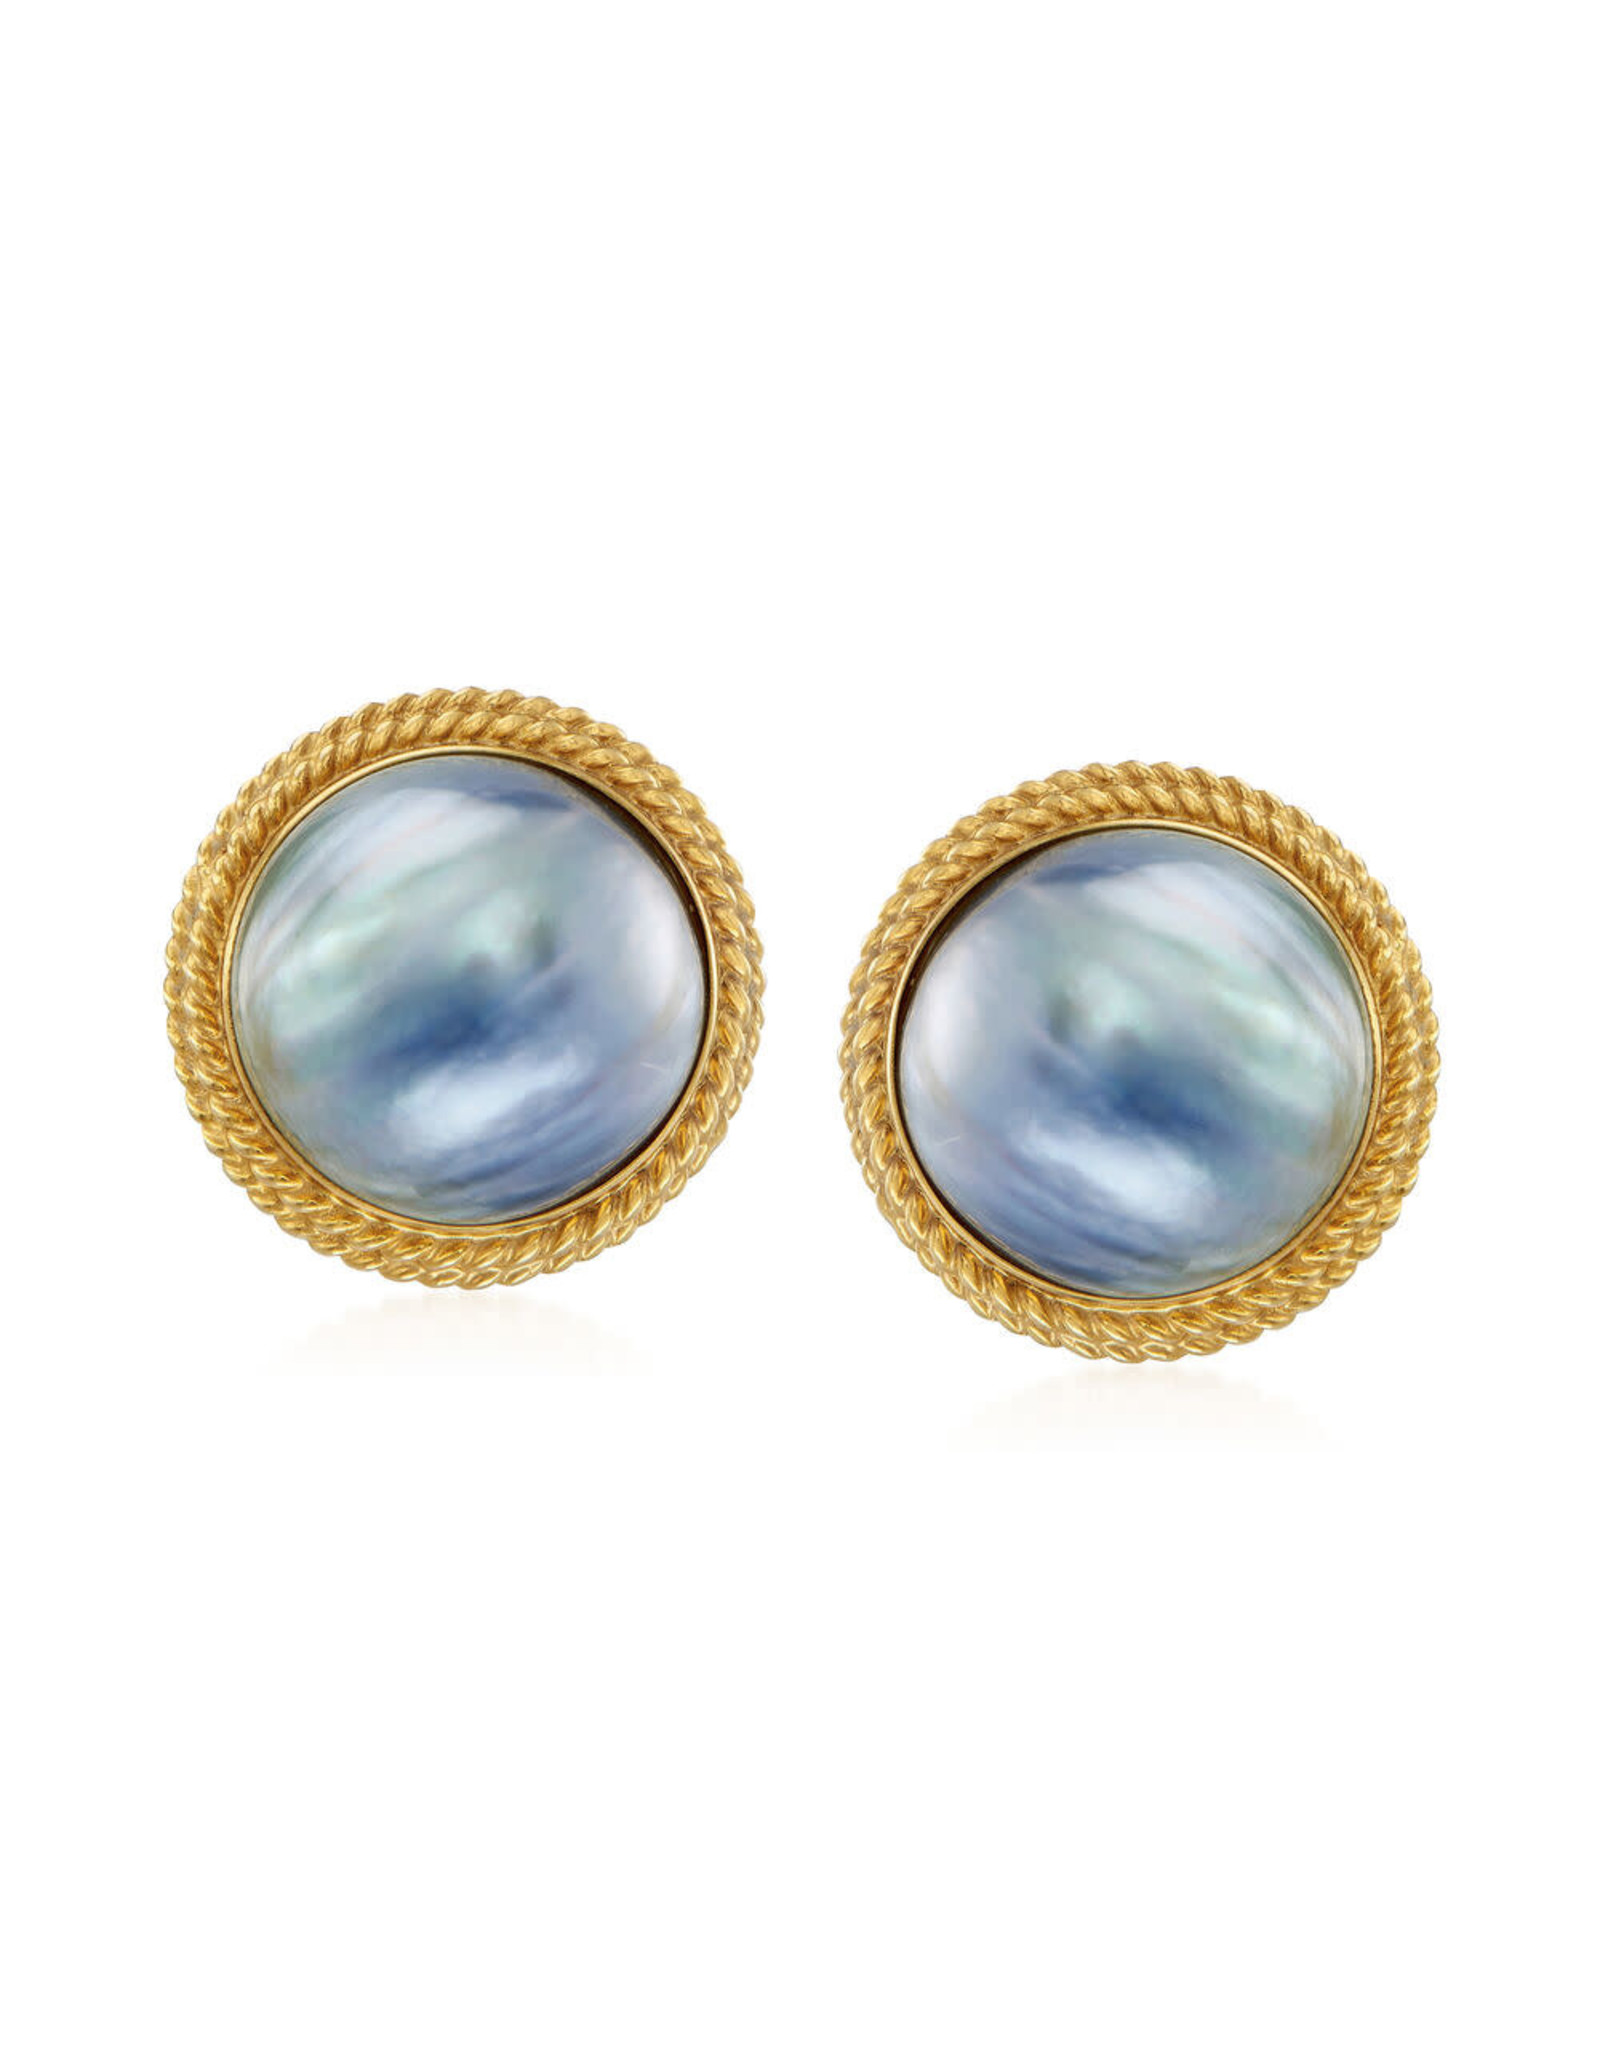 16mm Mabe Black Pearl Earrings with Omega Backs